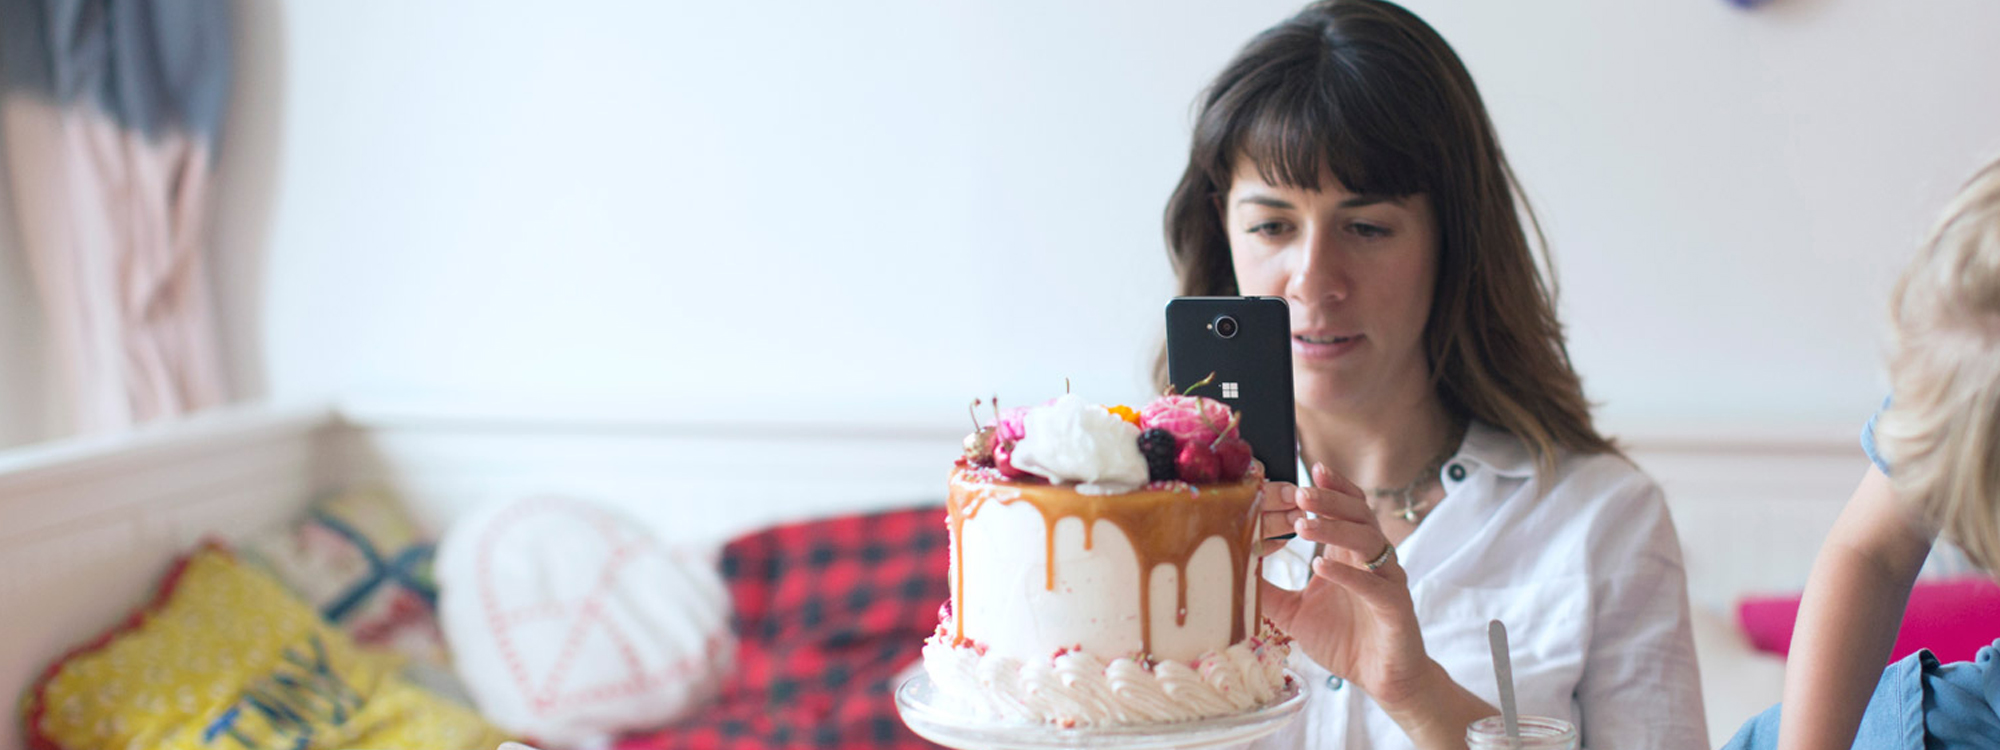 Mother taking picture of an elaborate cake on a table while daughter sitting on table plays